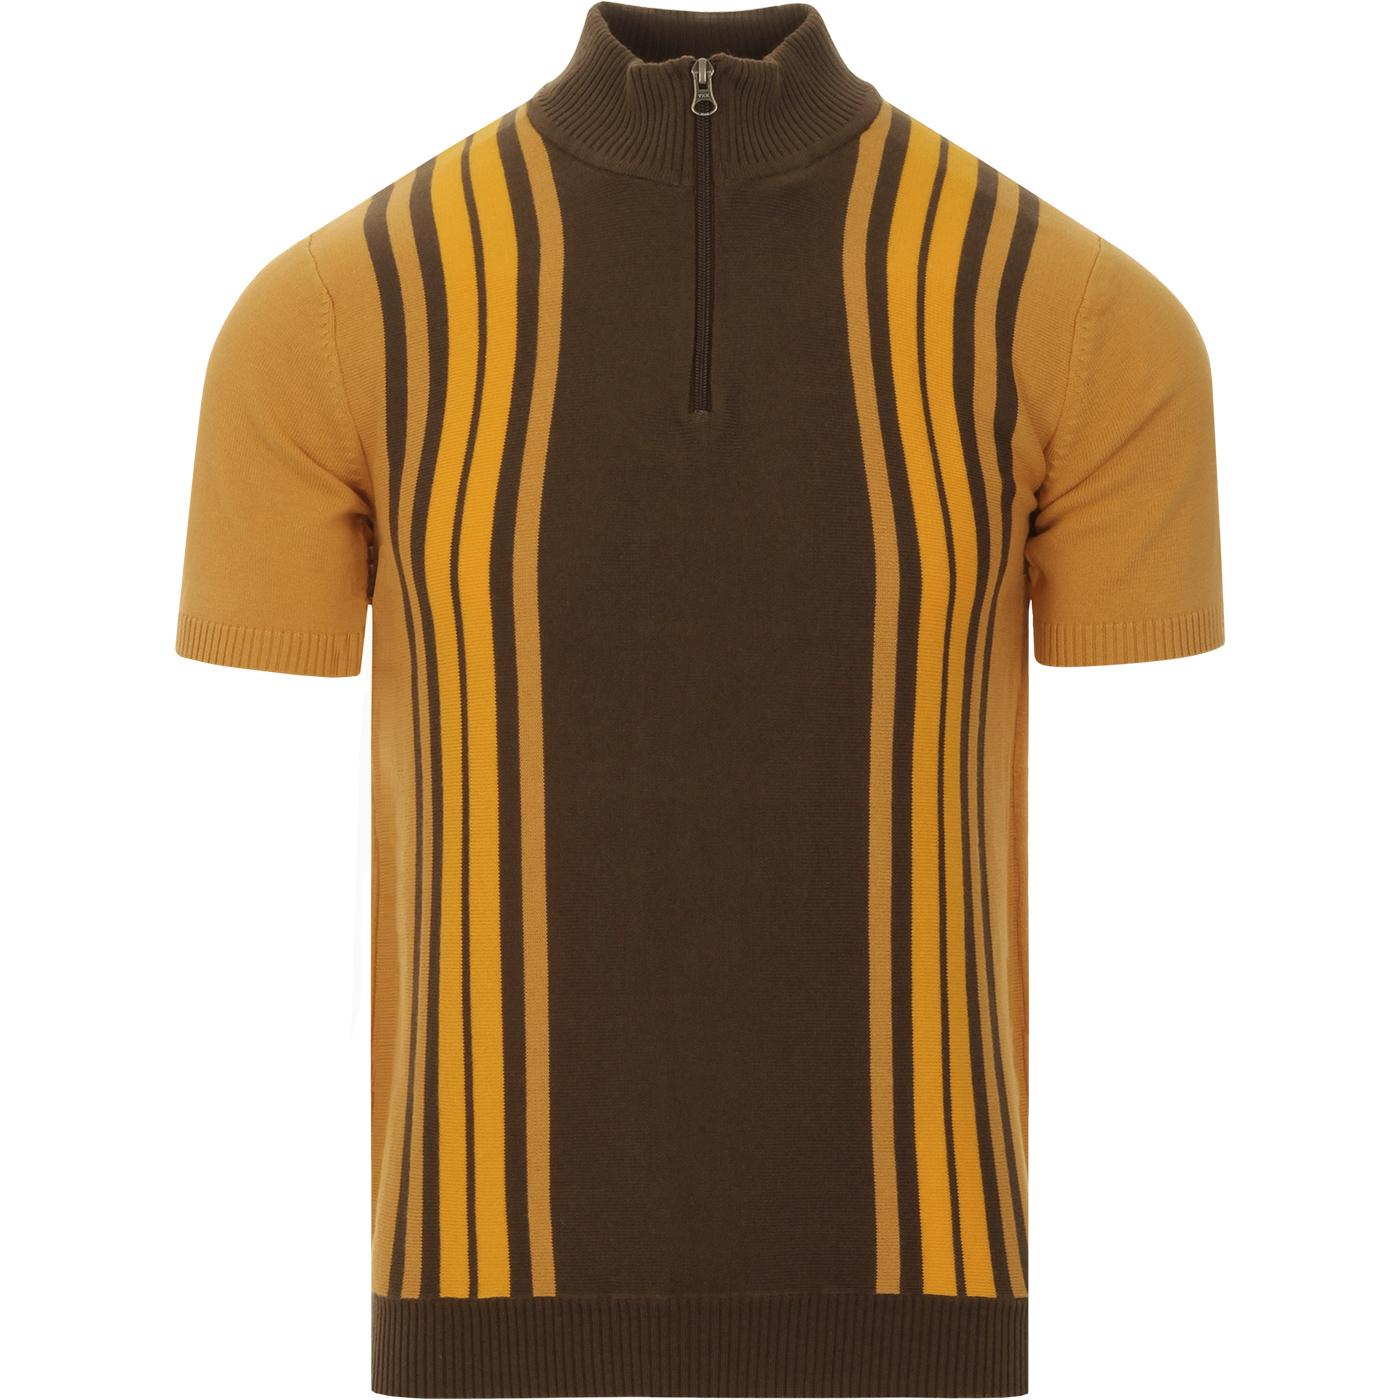 Sprint MADCAP ENGLAND Mod Stripe Knit Cycling Top